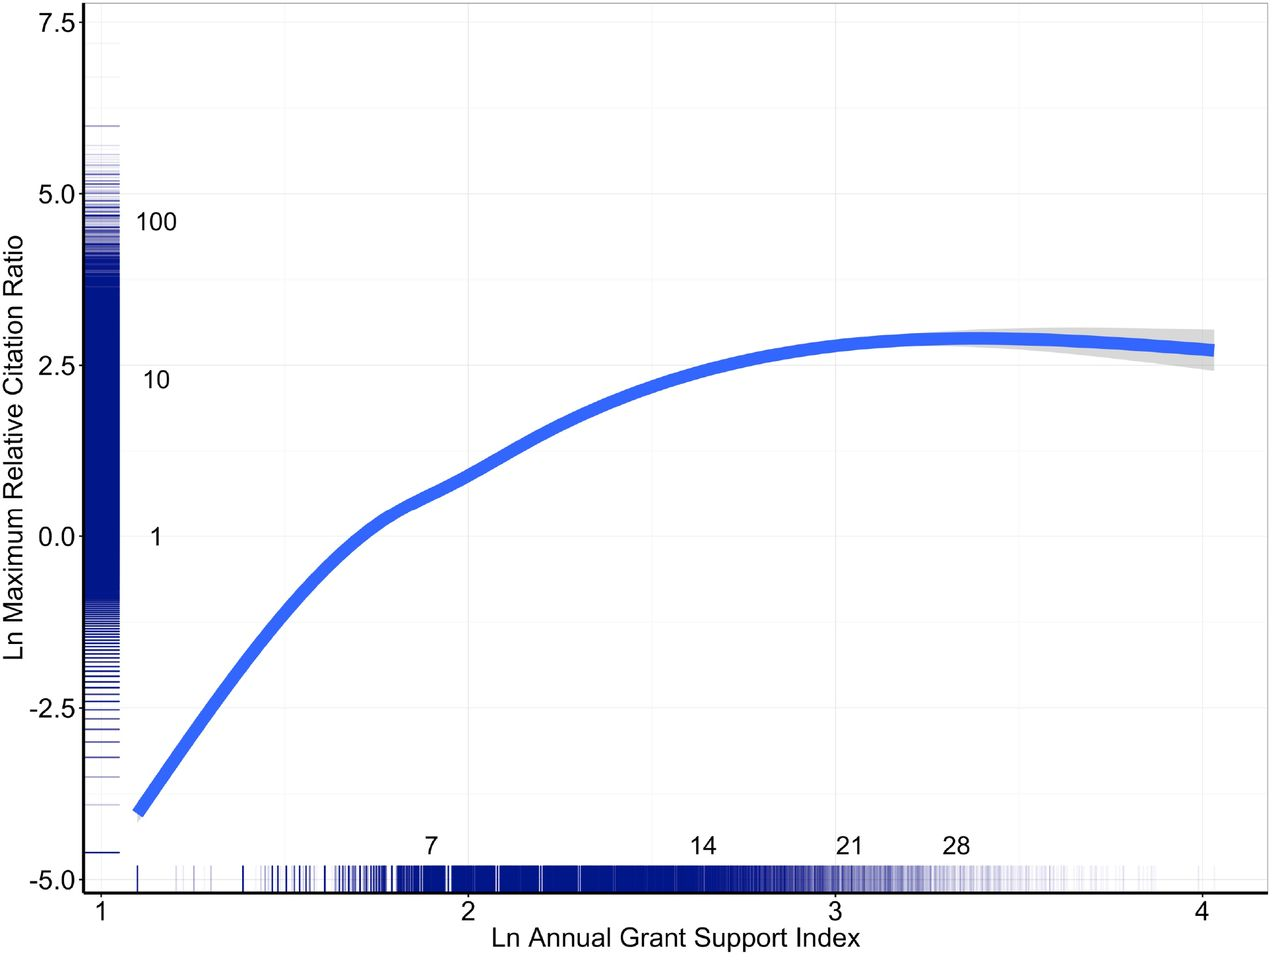 Marginal Returns and Levels of Research Grant Support among